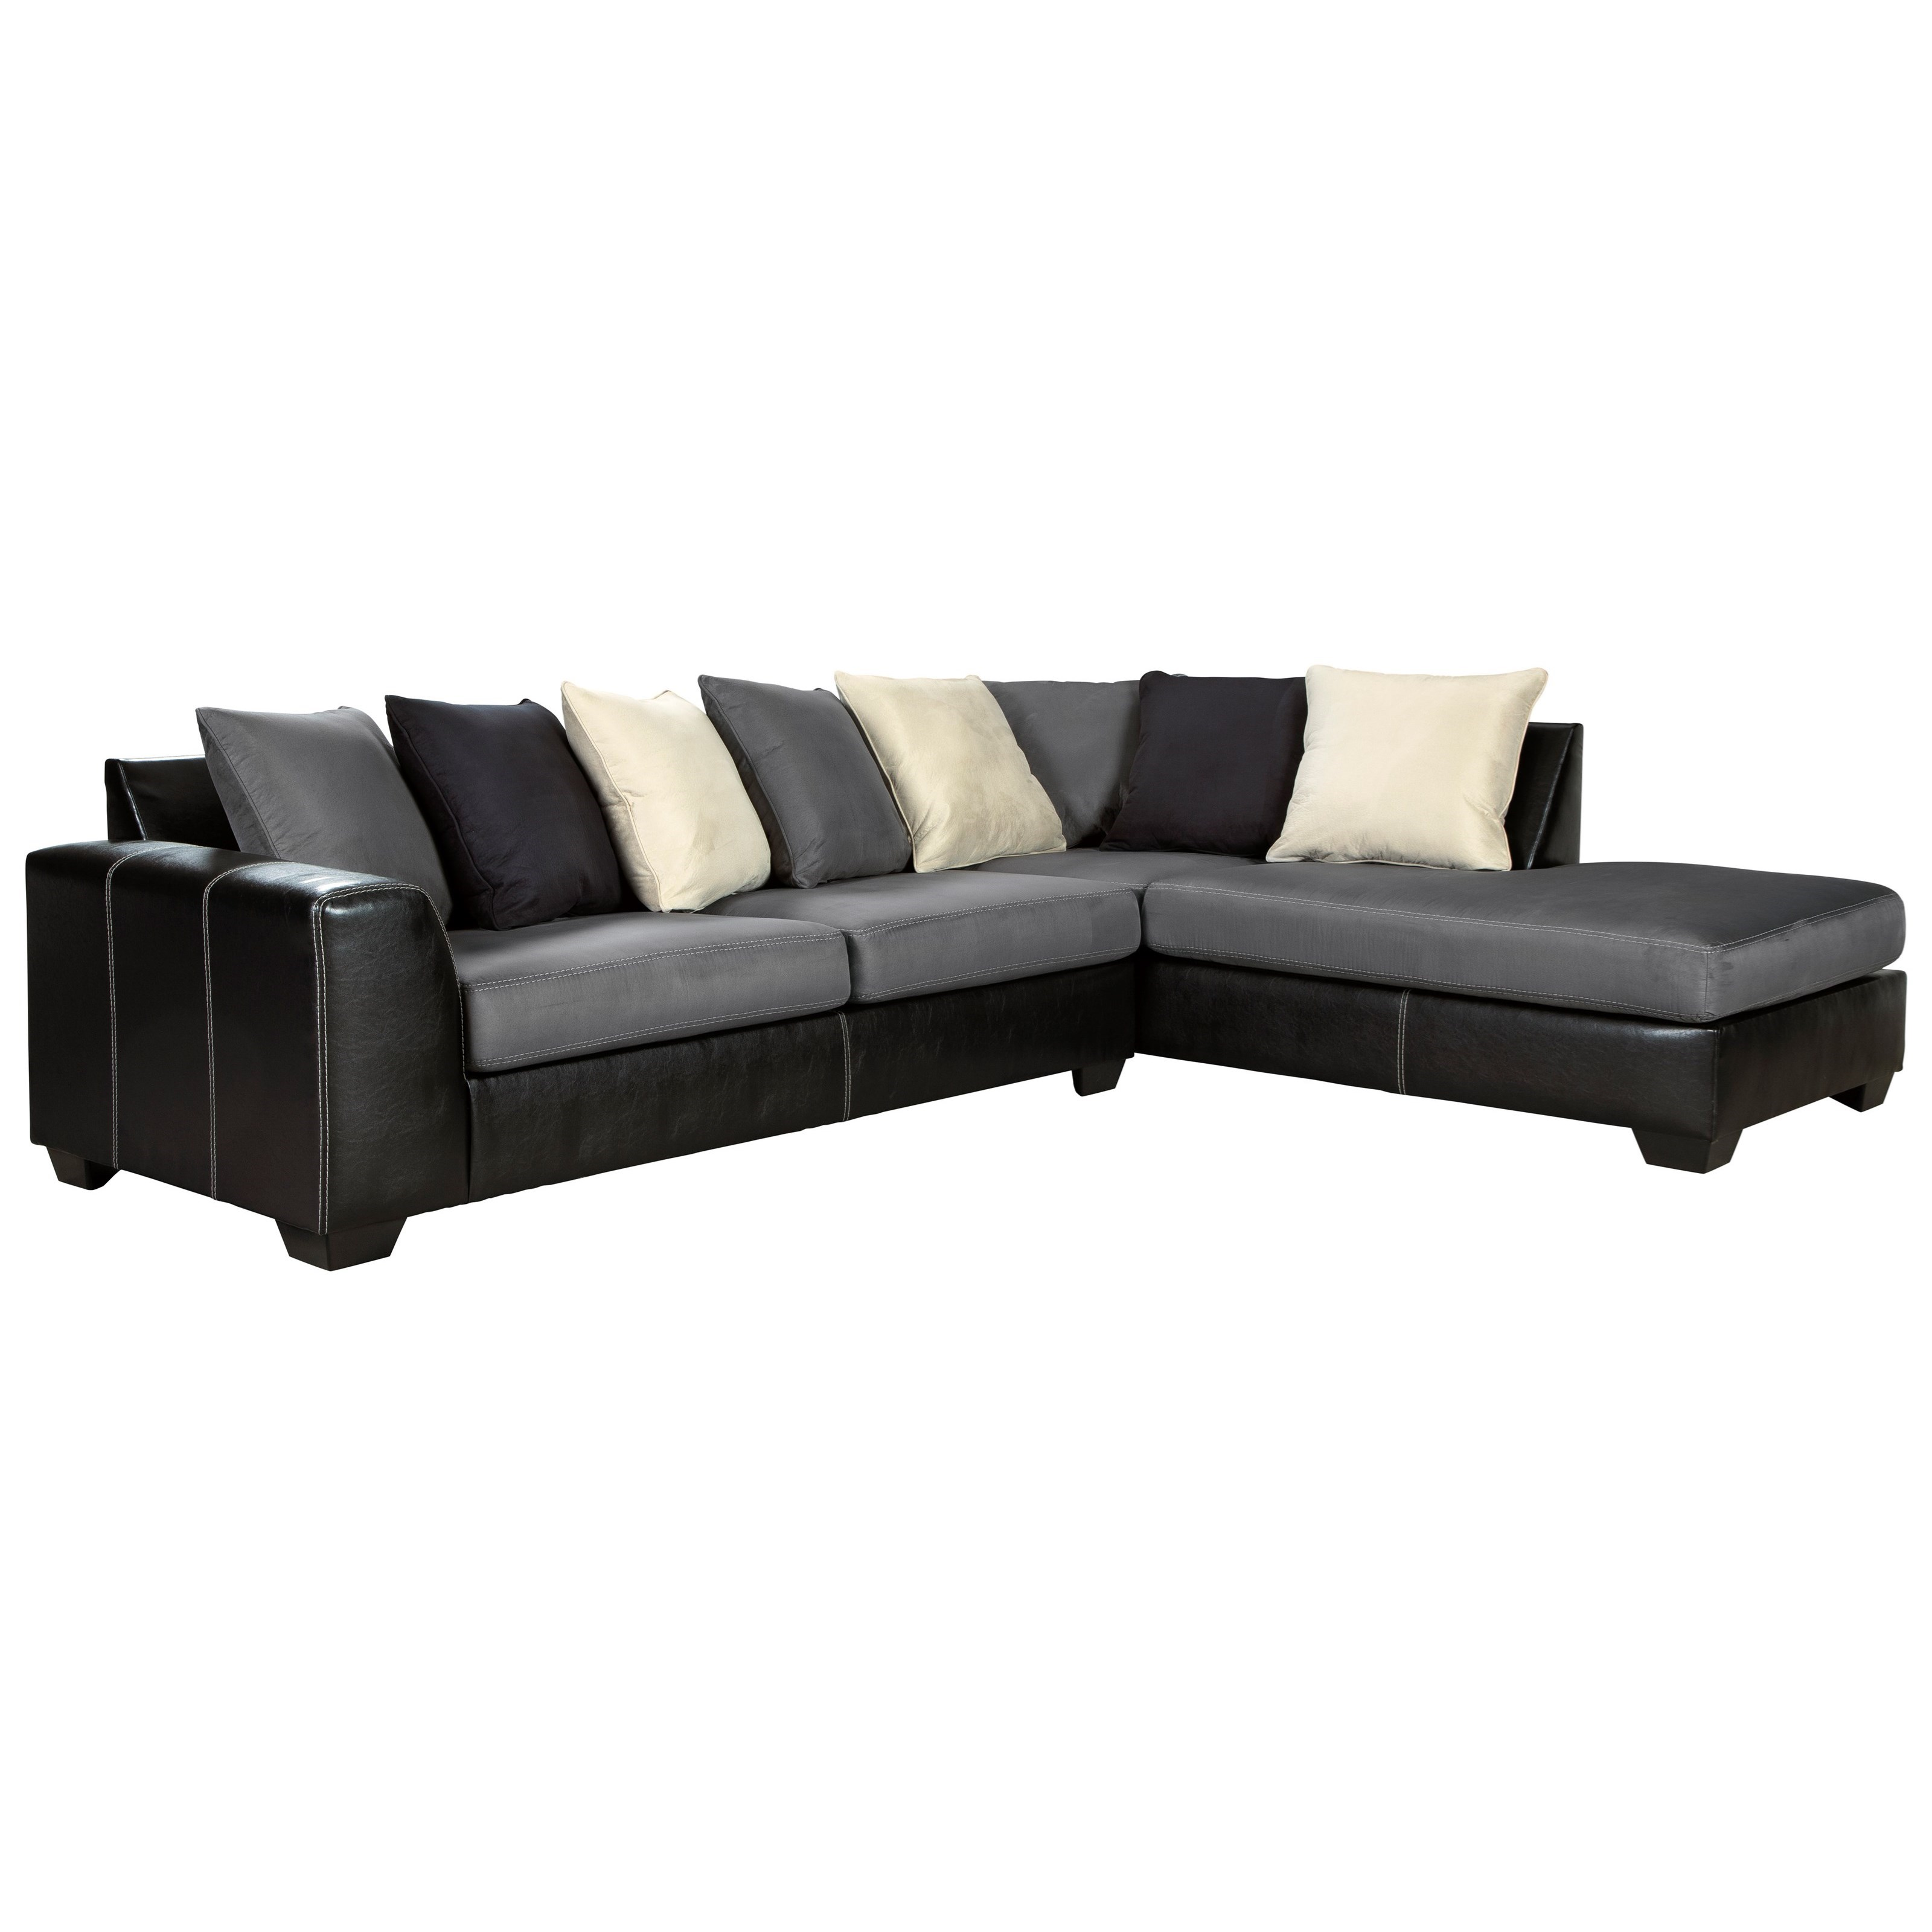 Jacurso Contemporary Sectional Sofa With Chaise By Ashley Signature Design At Dunk Bright Furniture